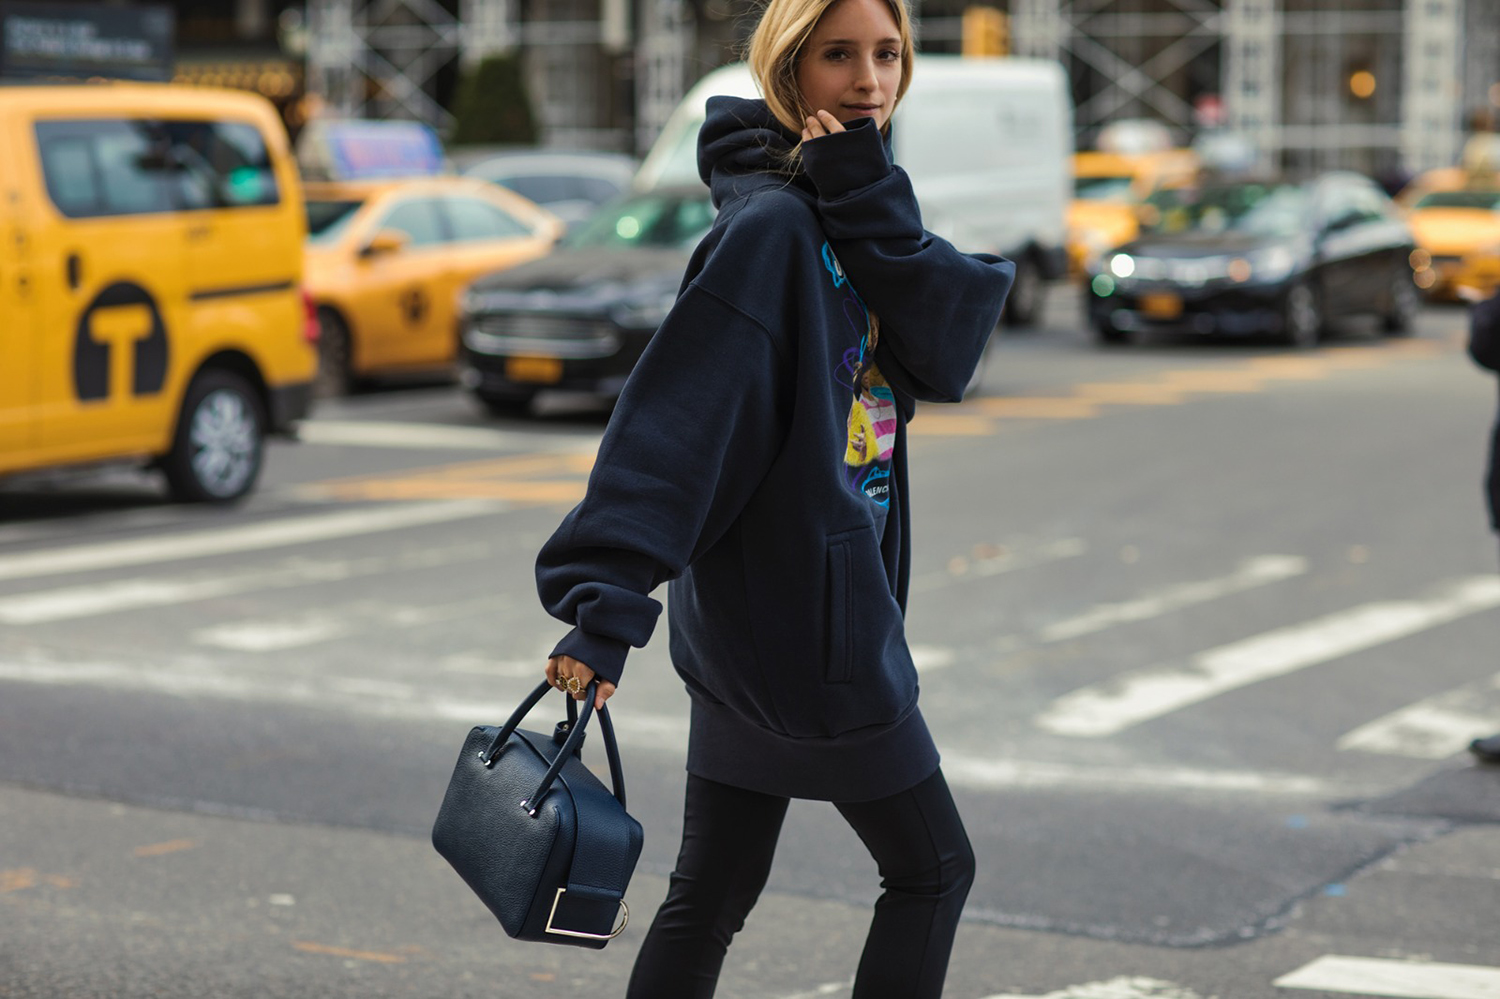 Charlotte Groeneveld in New York wearing Balenciaga and a Delvaux bag